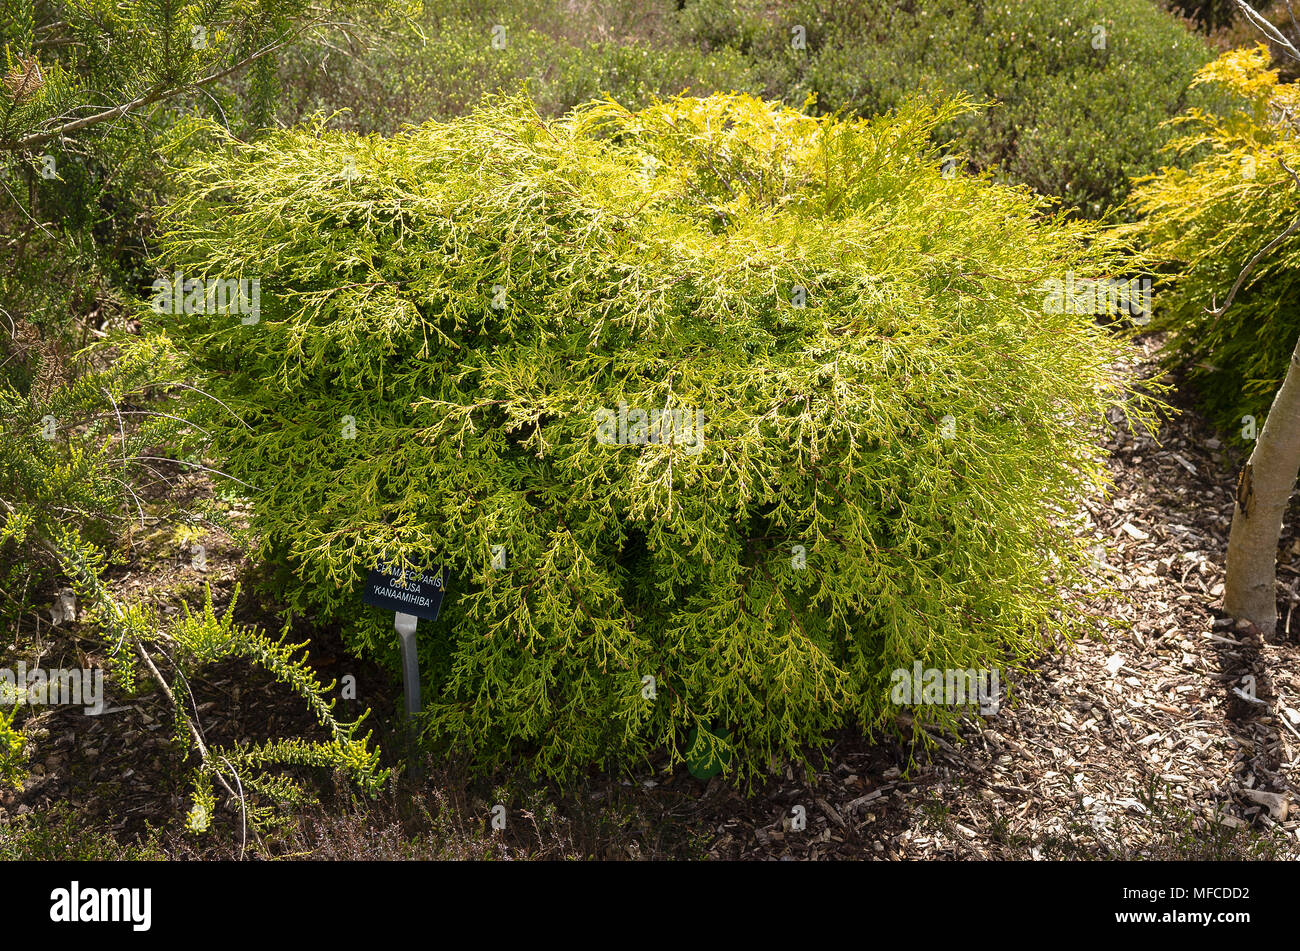 Chamaecyparis obtusa Kanamachiba evergreen conifer in an English garden - Stock Image